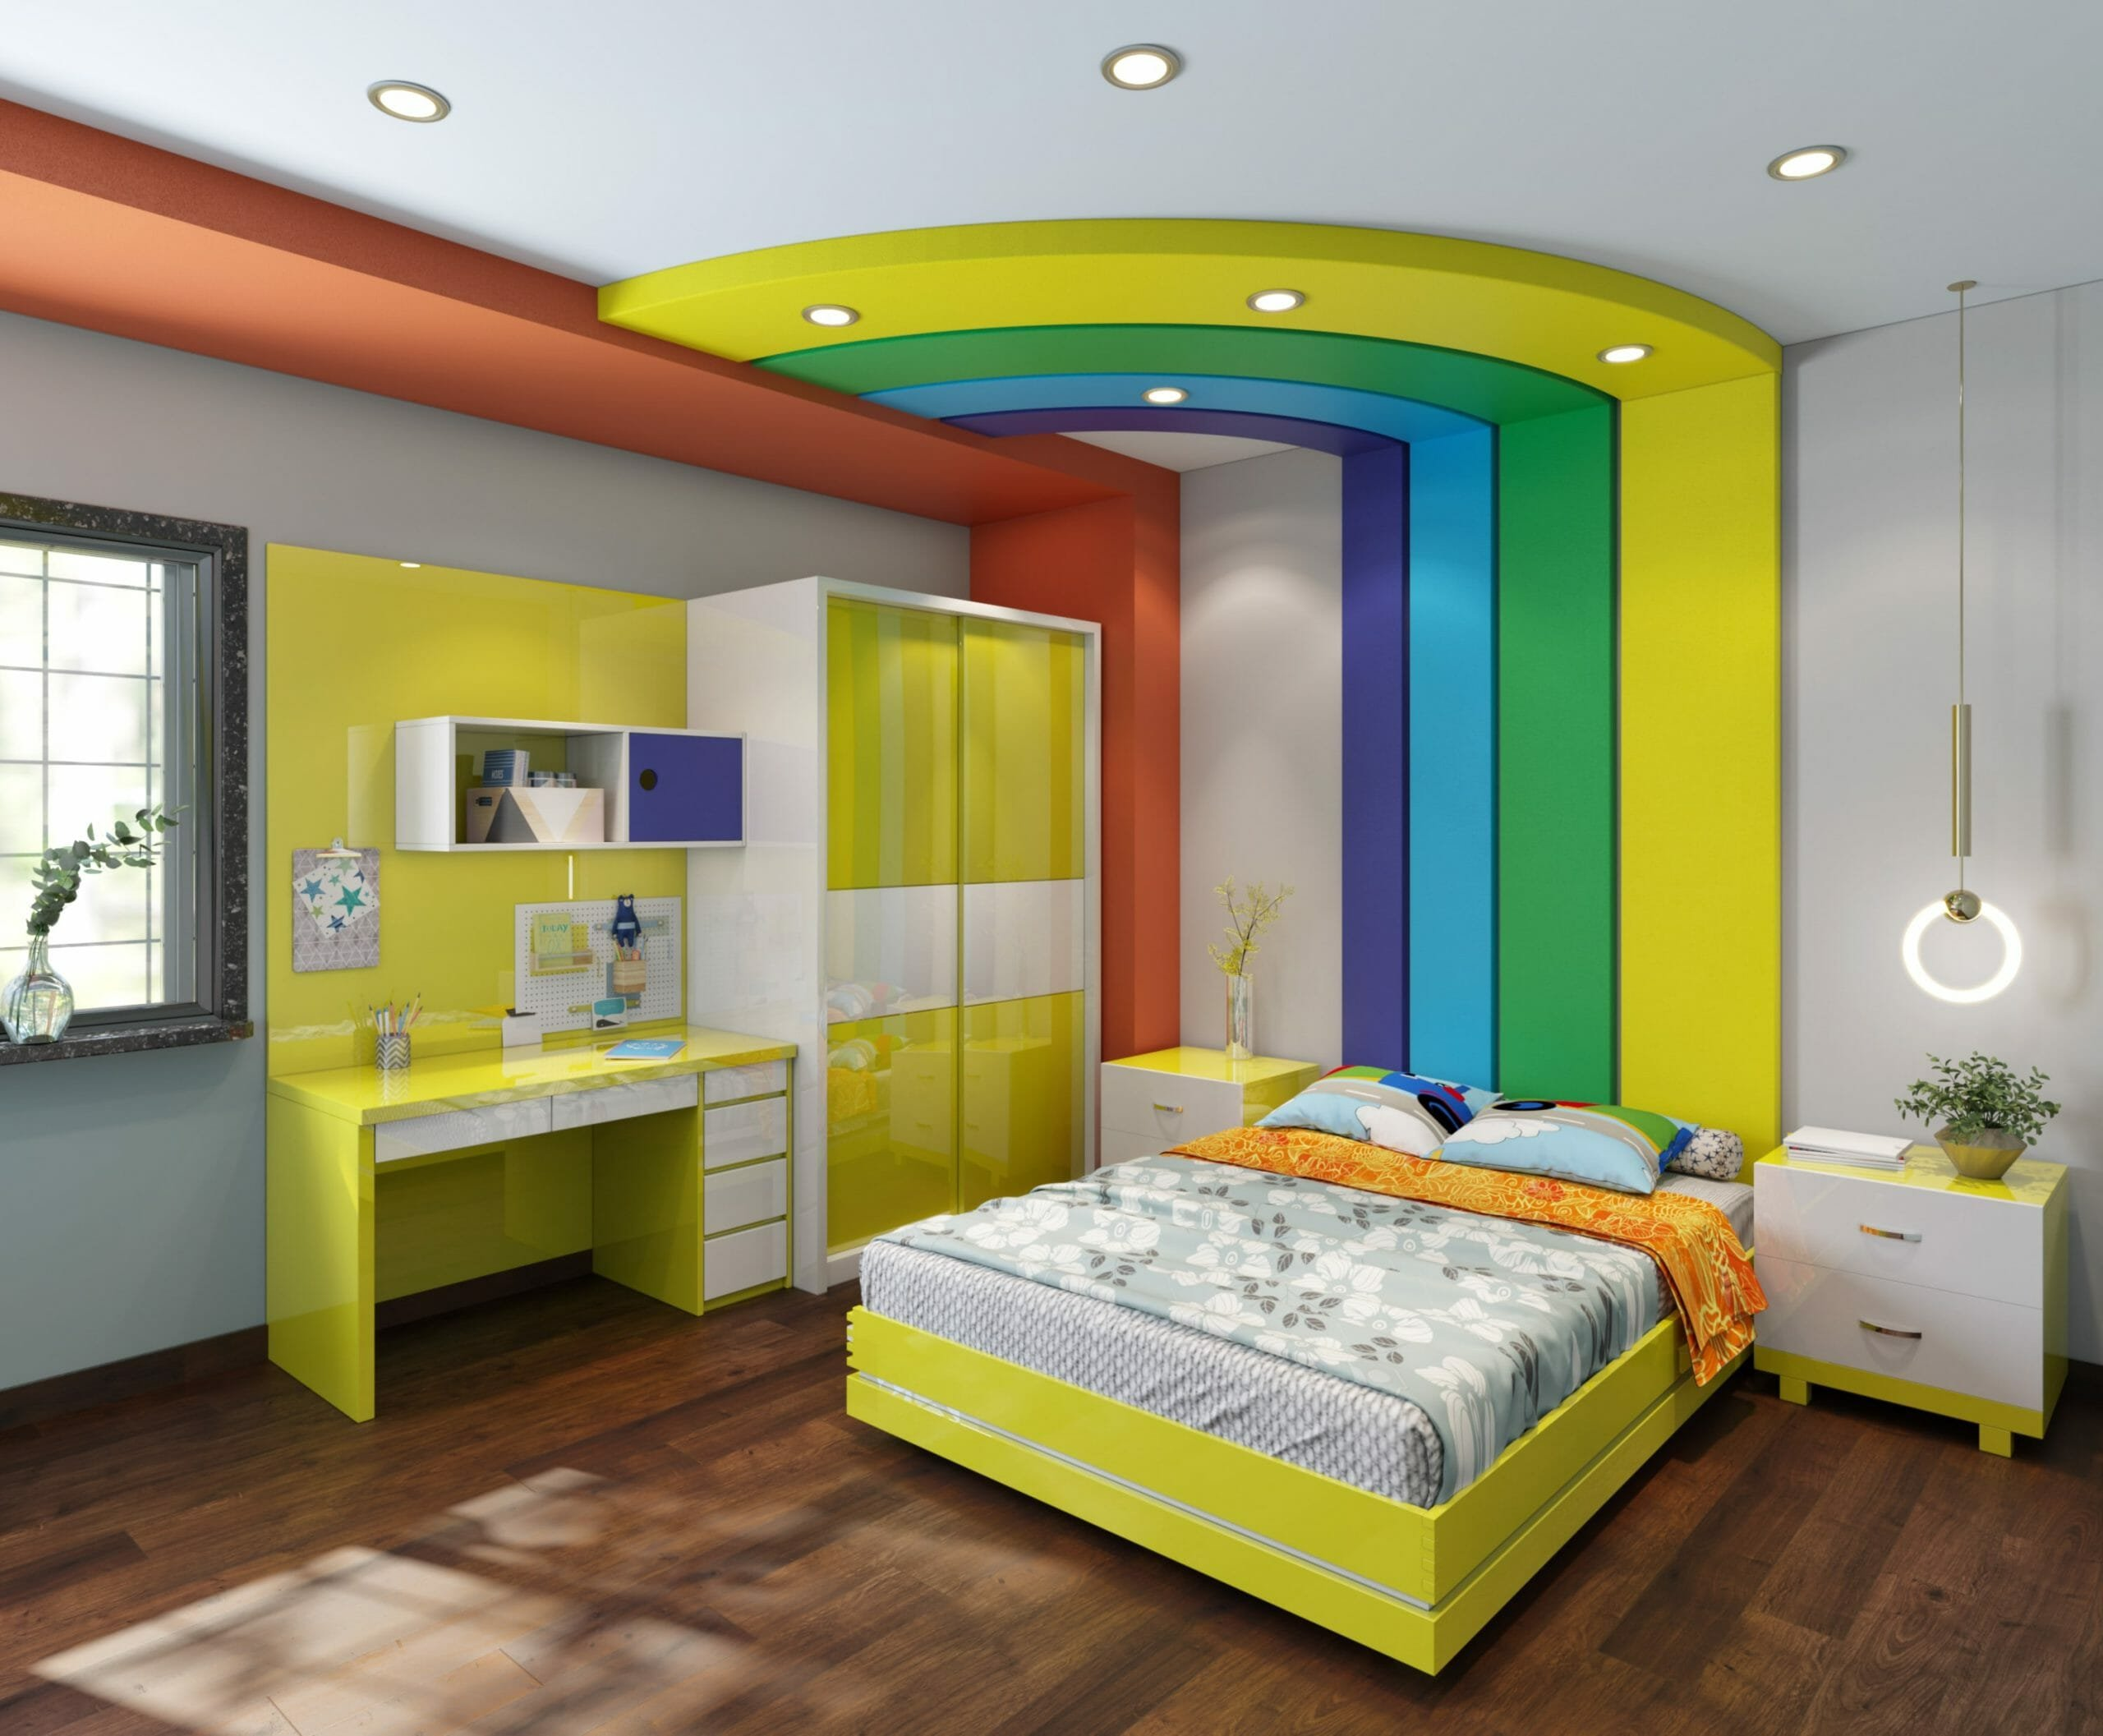 Kid S Room Interior Design Top 10 Tips To Decorate My Kids Room